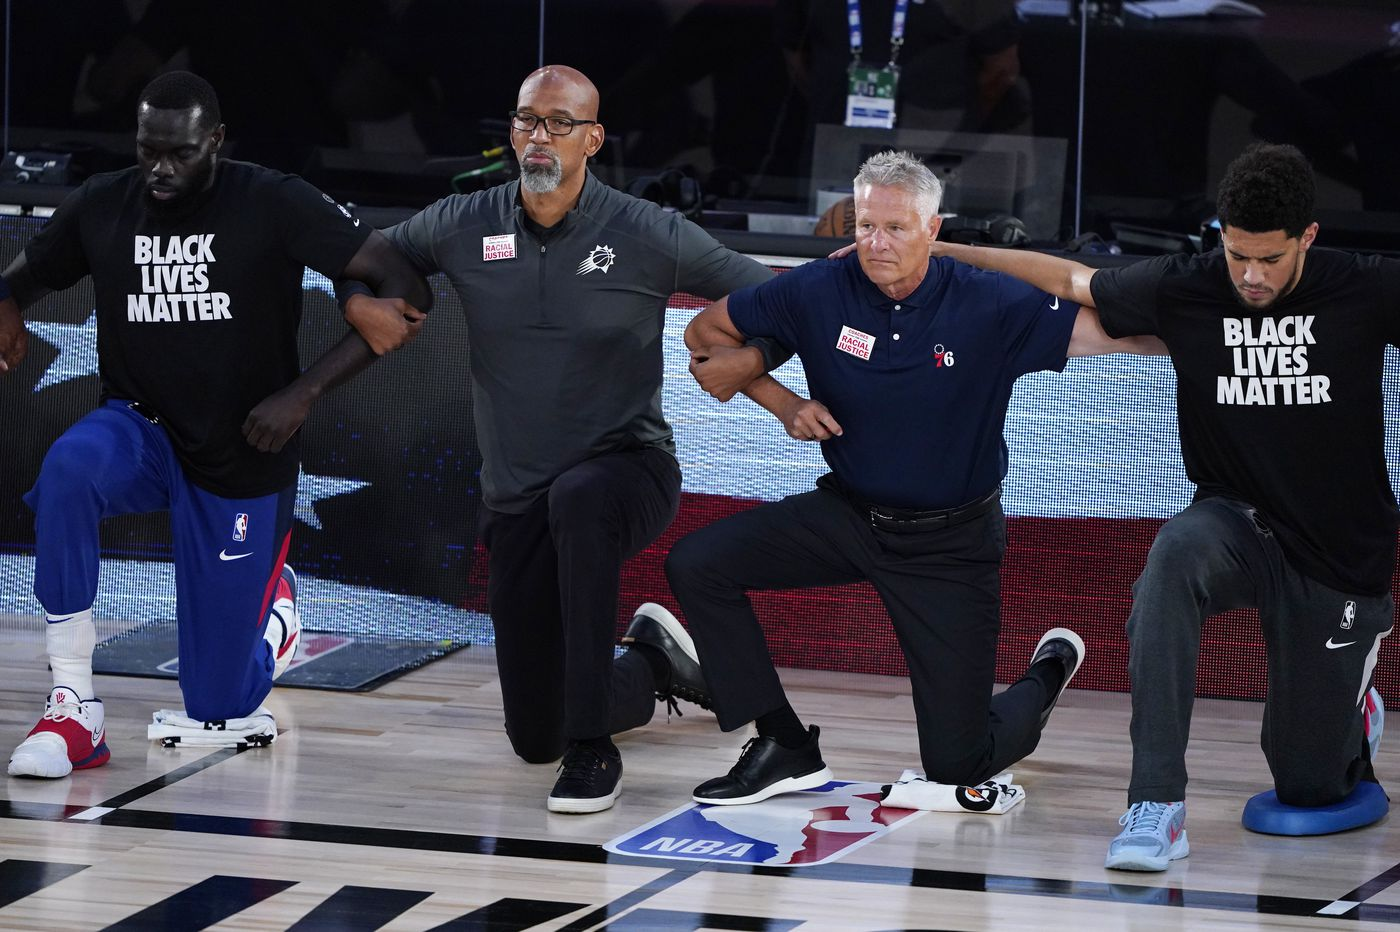 Sixers coach Brett Brown not surprised by Game 1 upsets